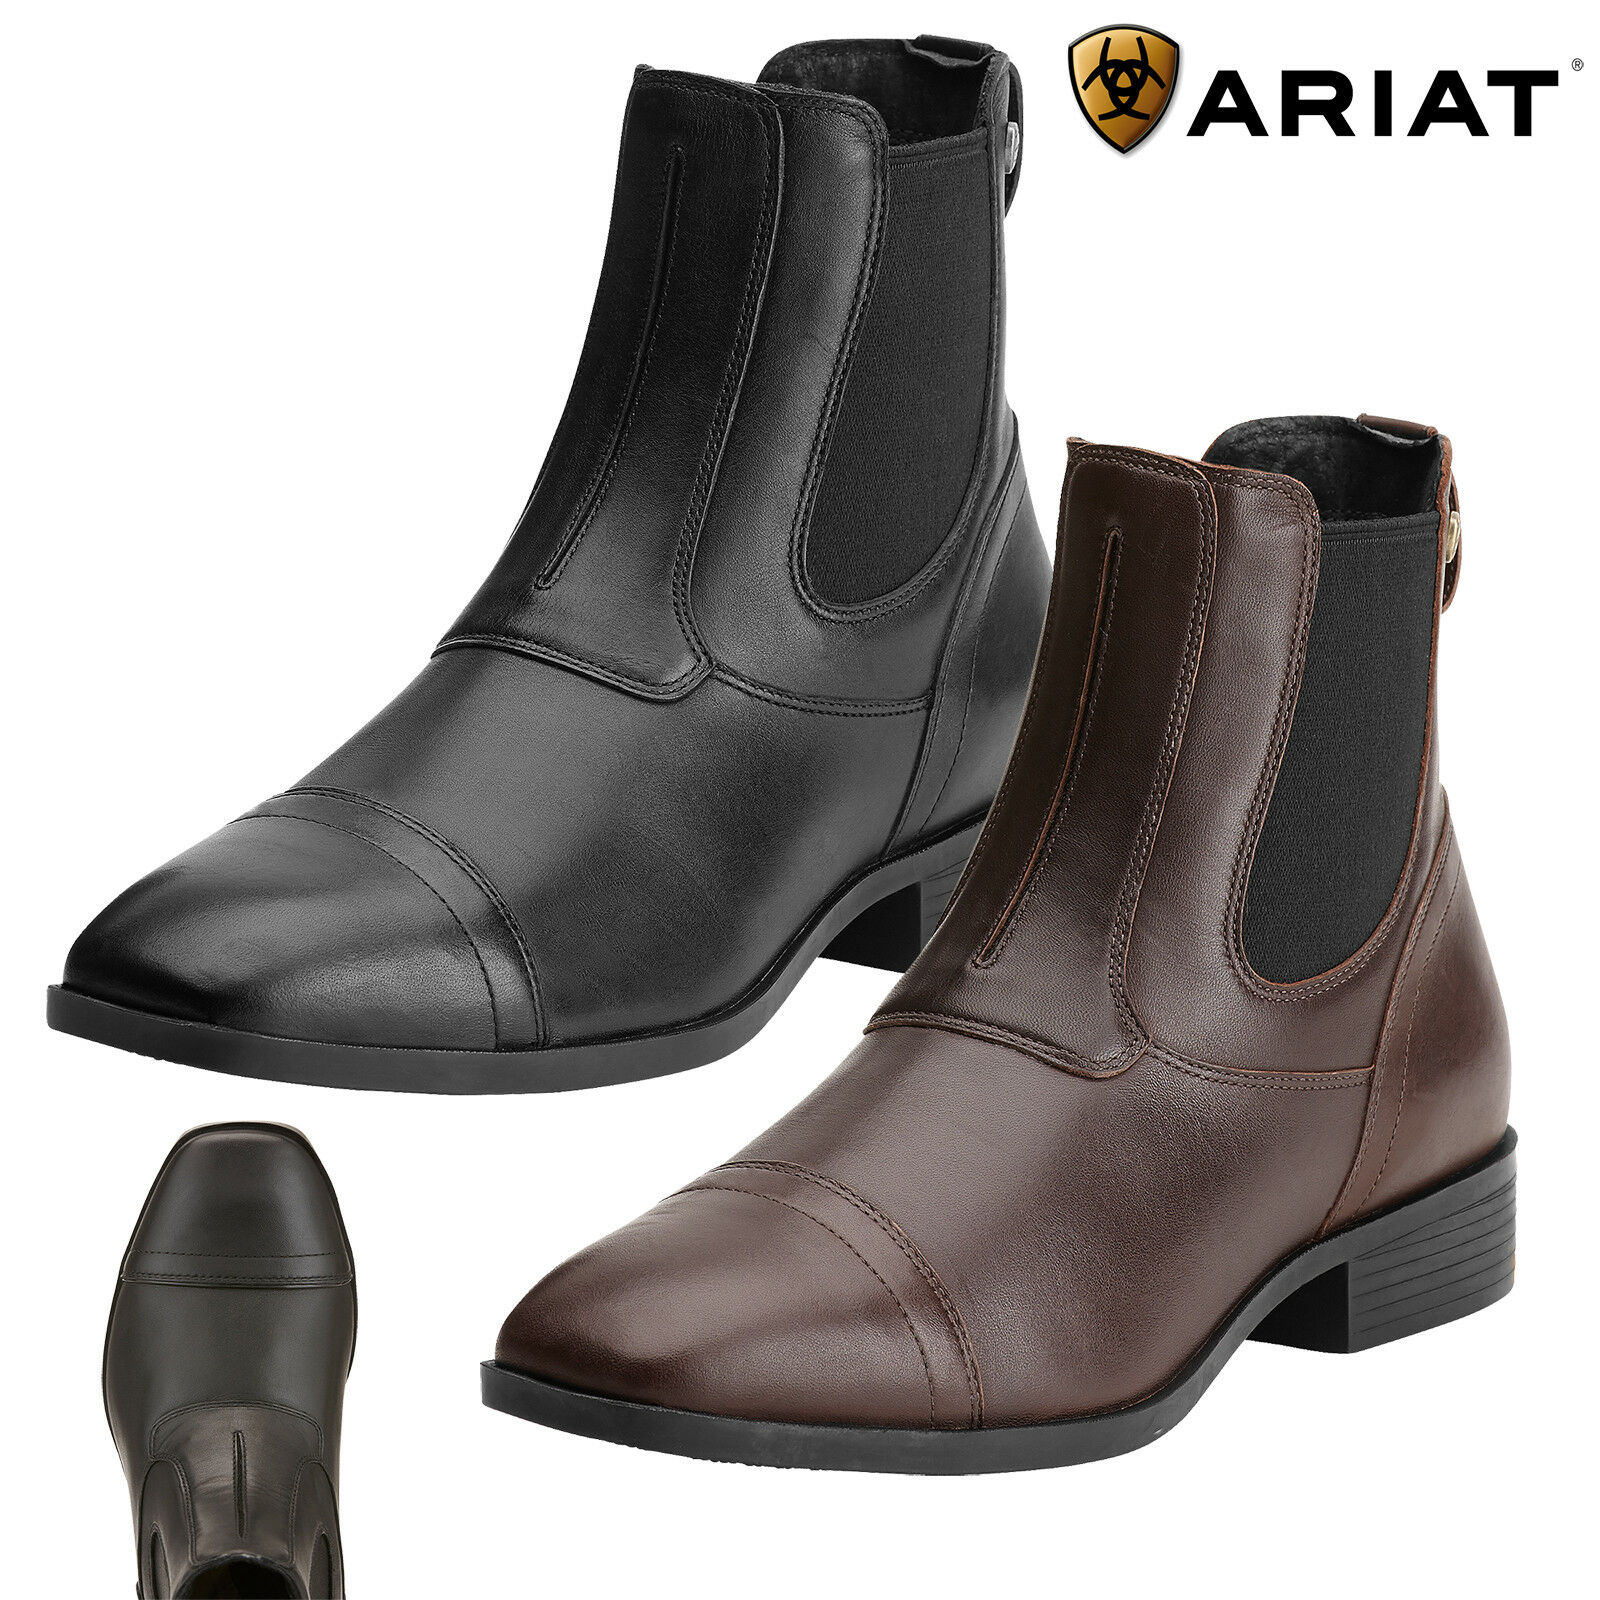 Ariat Challenge Square Toe Kleid Paddock Stiefel SALE FREE UK Shipping